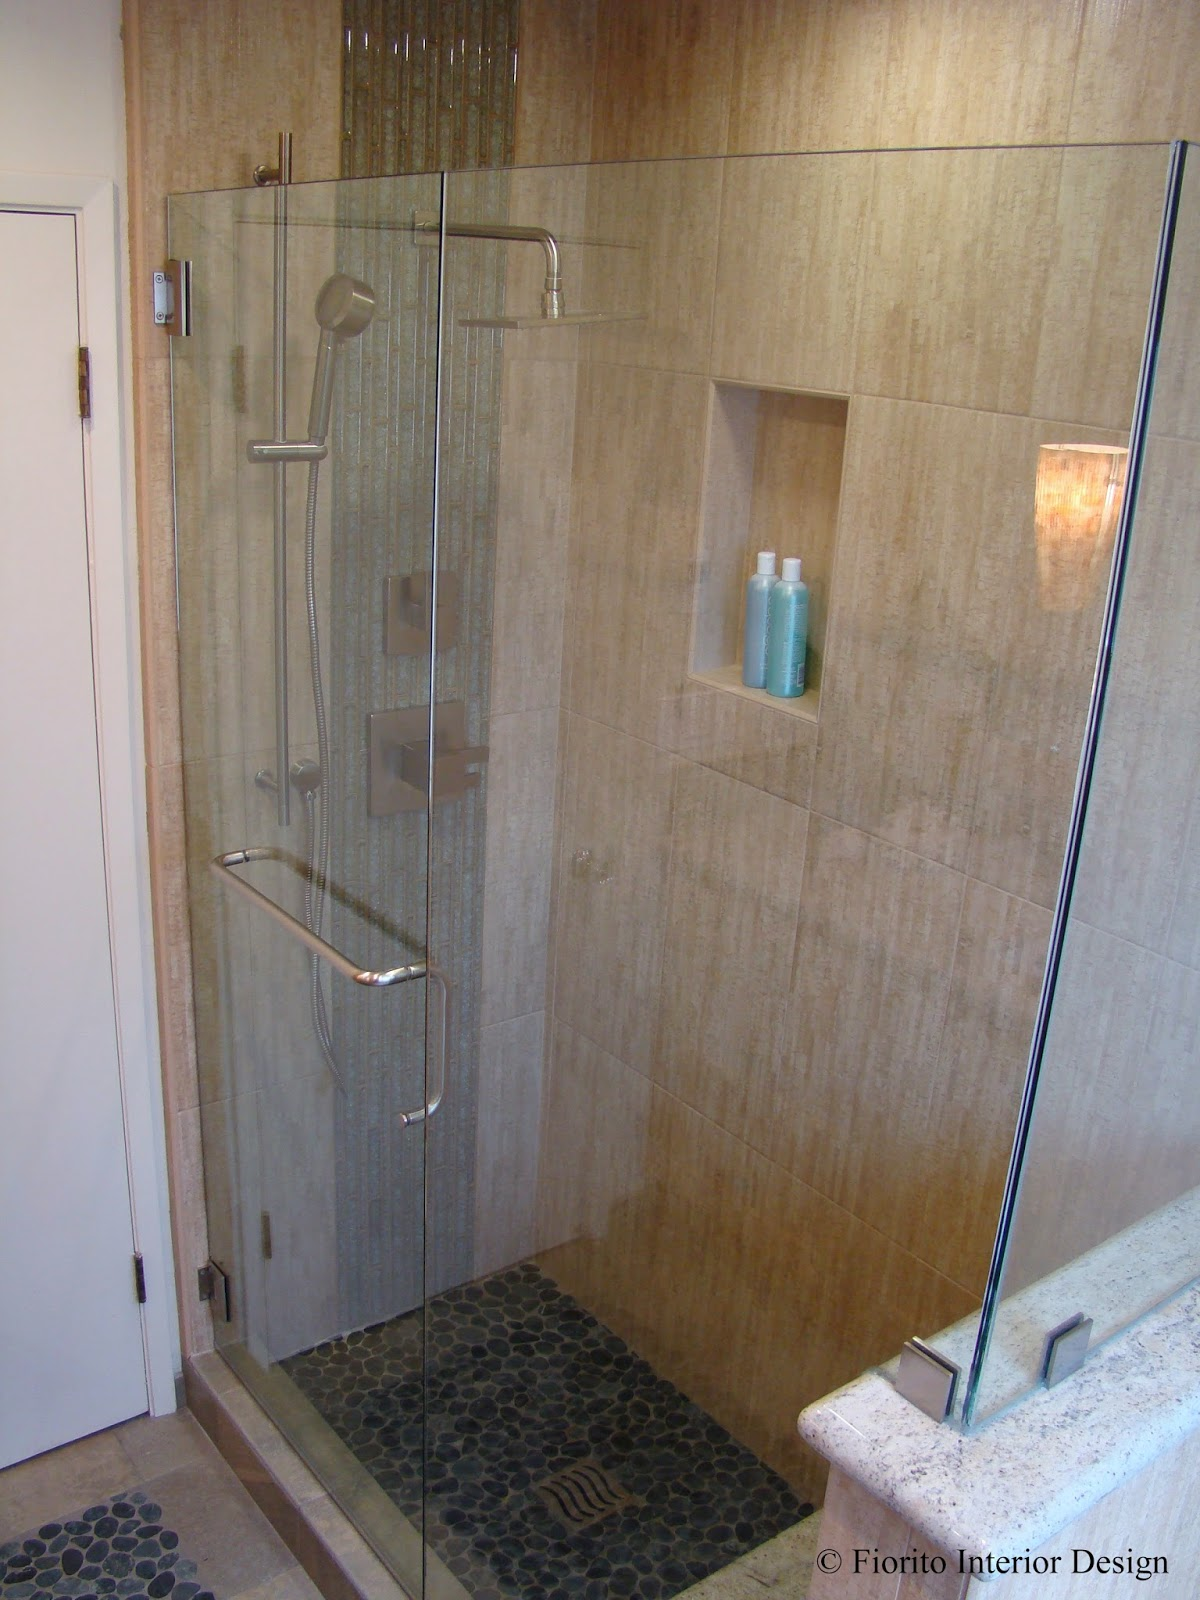 Fiorito interior design an island bathroom by fiorito interior design Bathroom tile showers